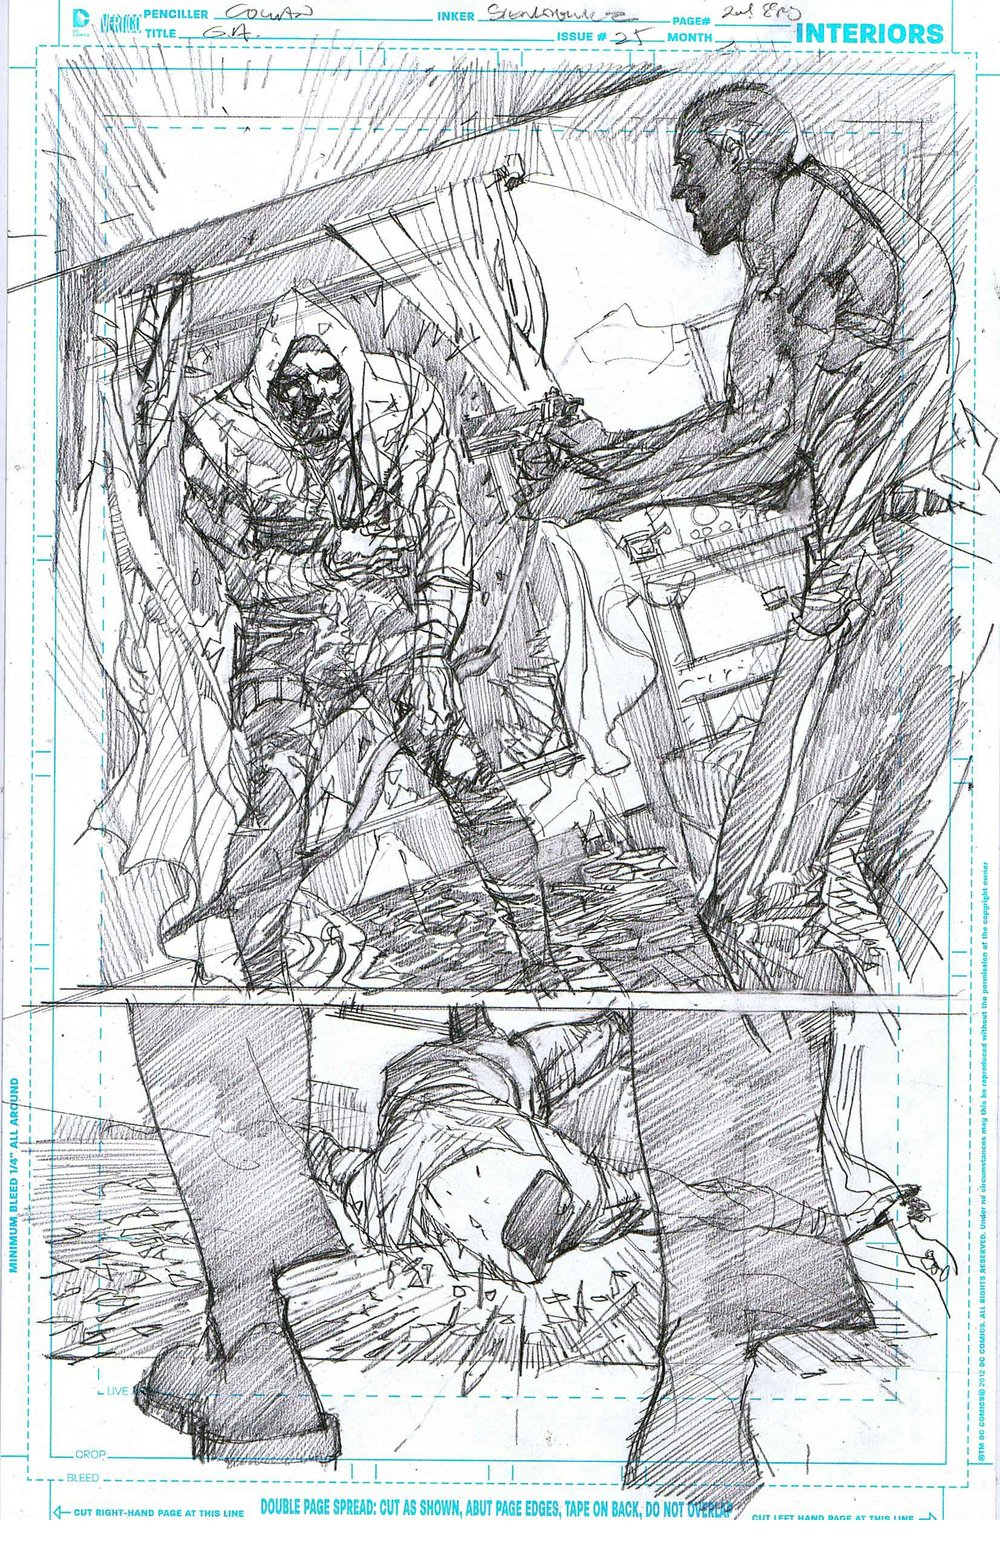 Green Arrow #25 - Page 2 - Pencils